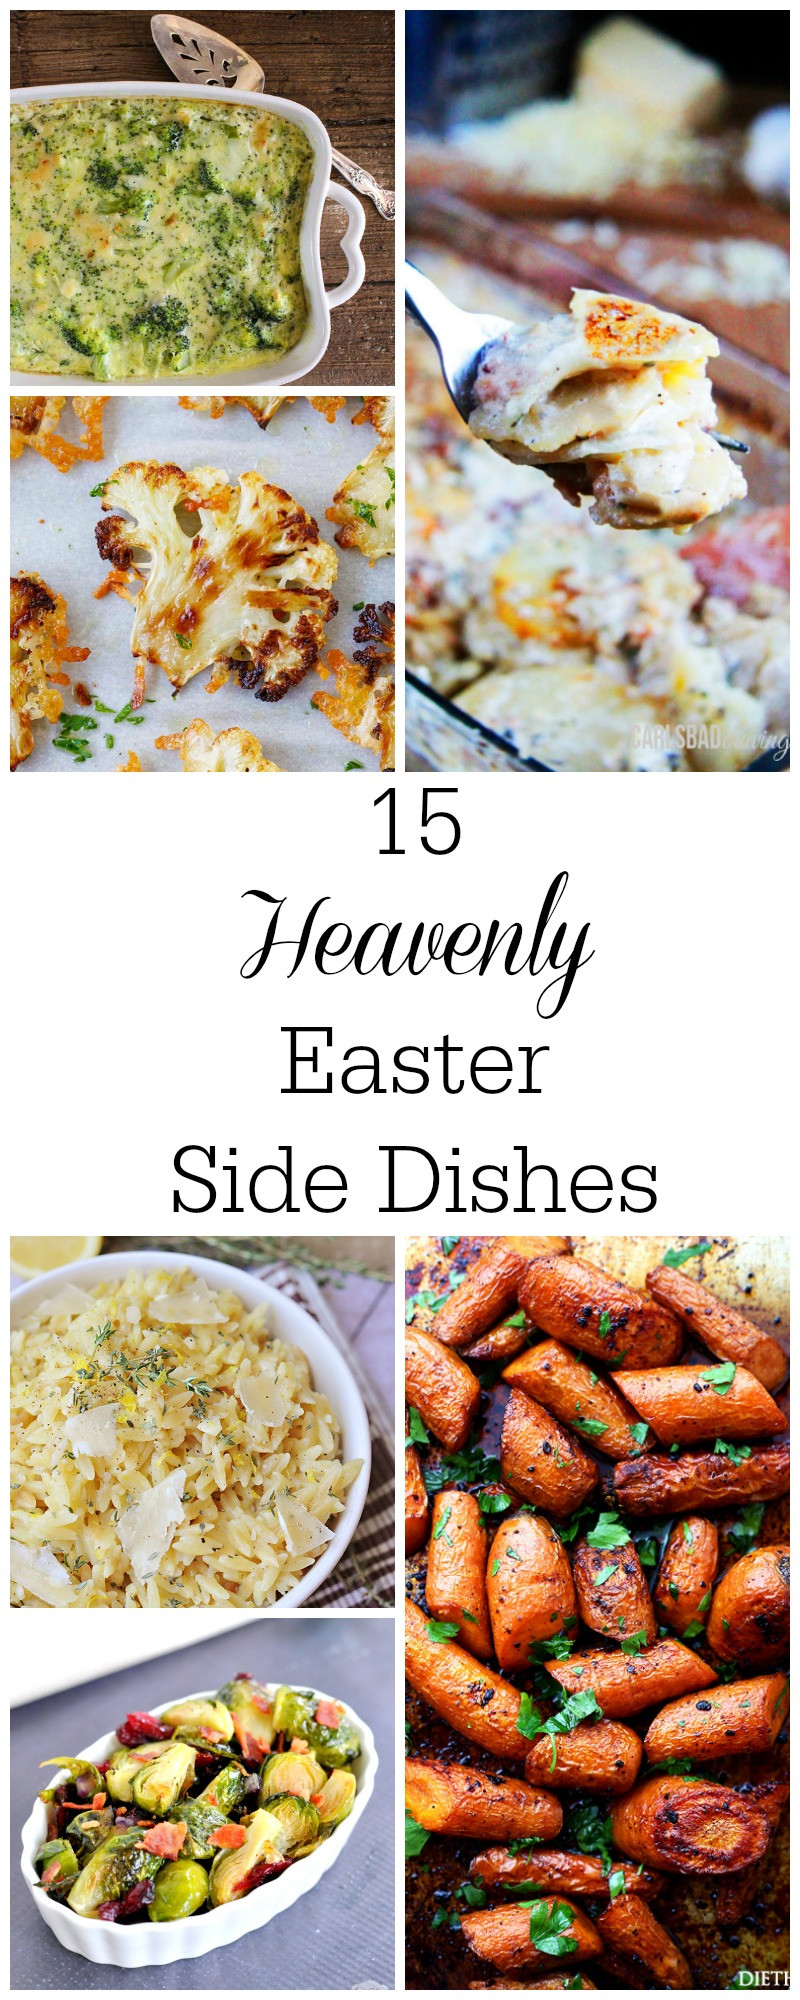 Traditional Easter Dinner Sides  15 Heavenly Easter Side Dishes My Suburban Kitchen